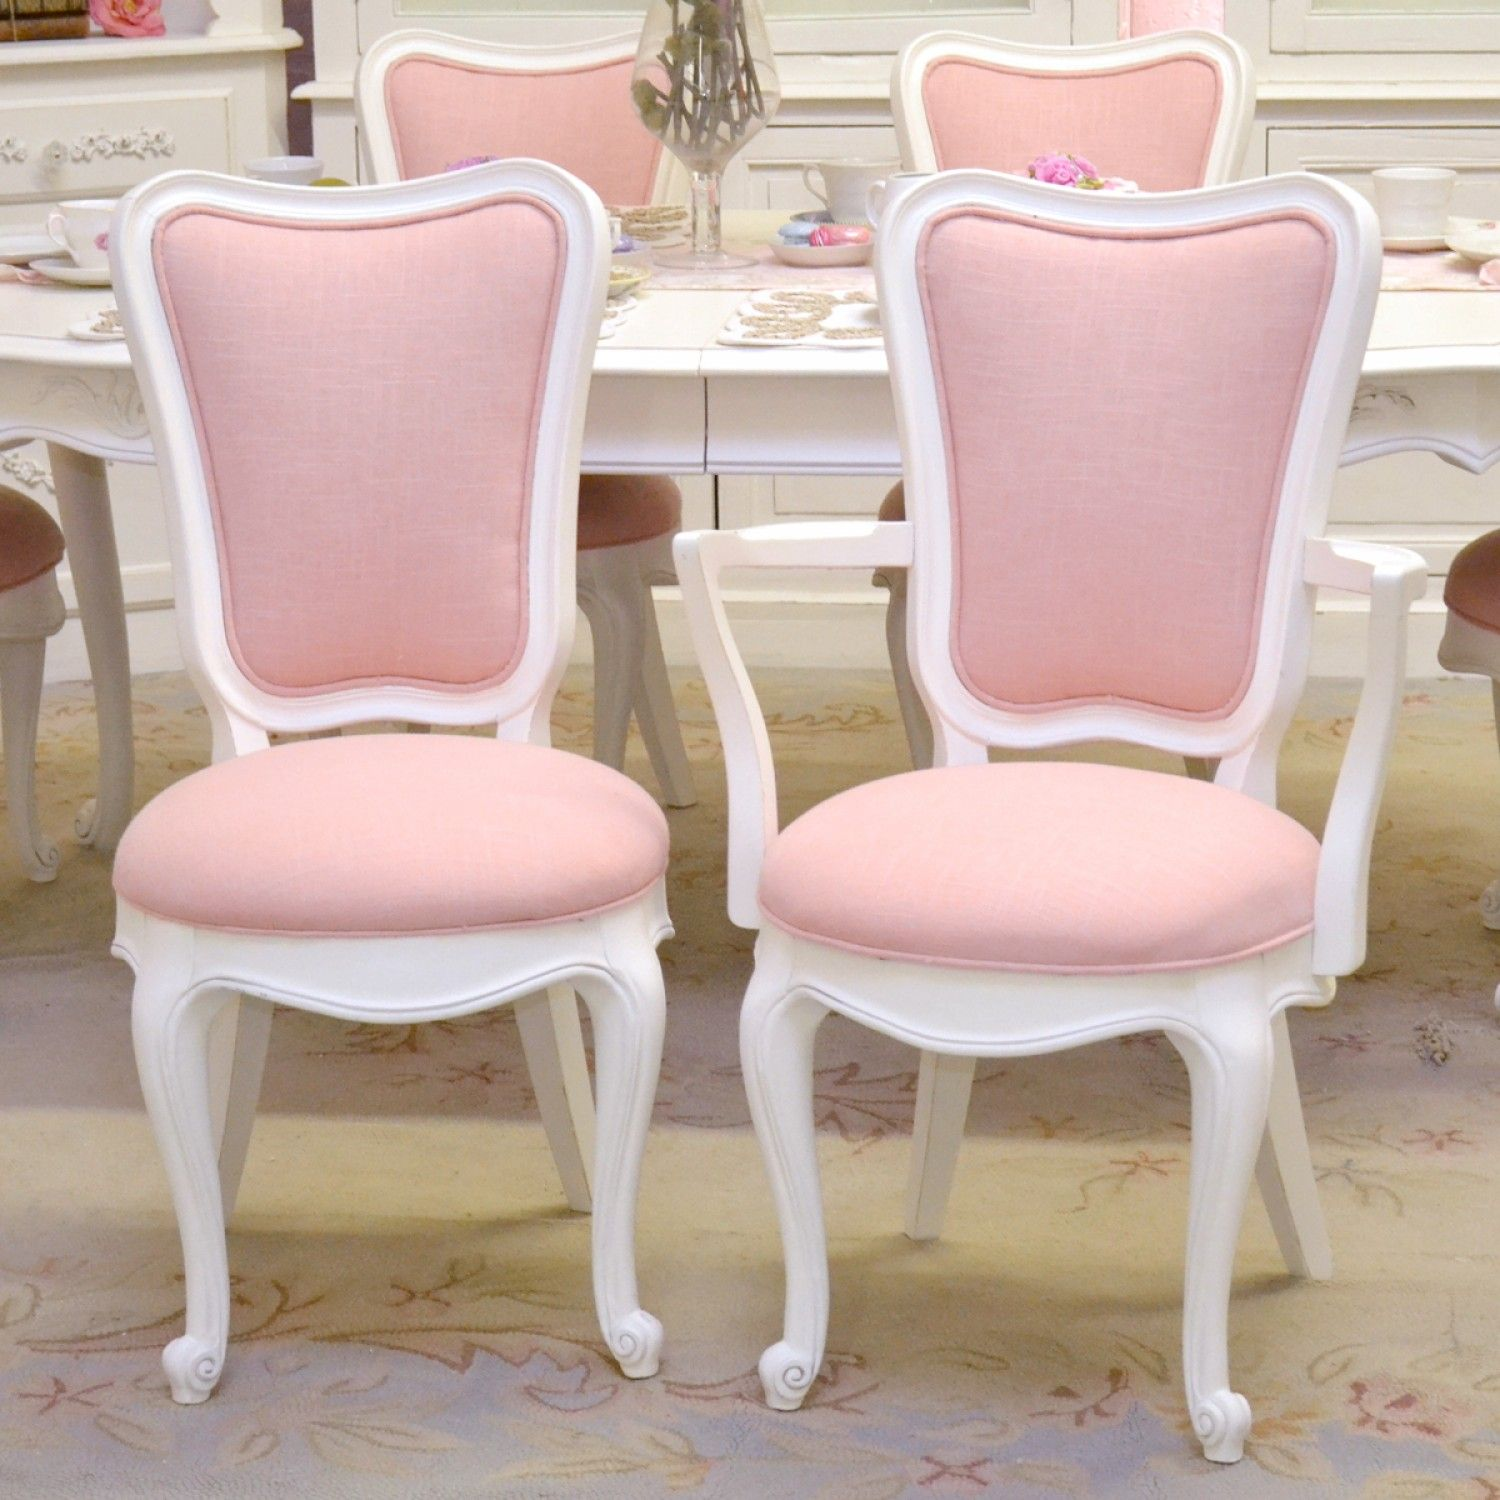 Tall Back Dining Chairs Elegant Tall Back Dining Chairs In Pink Linen Set Of 6